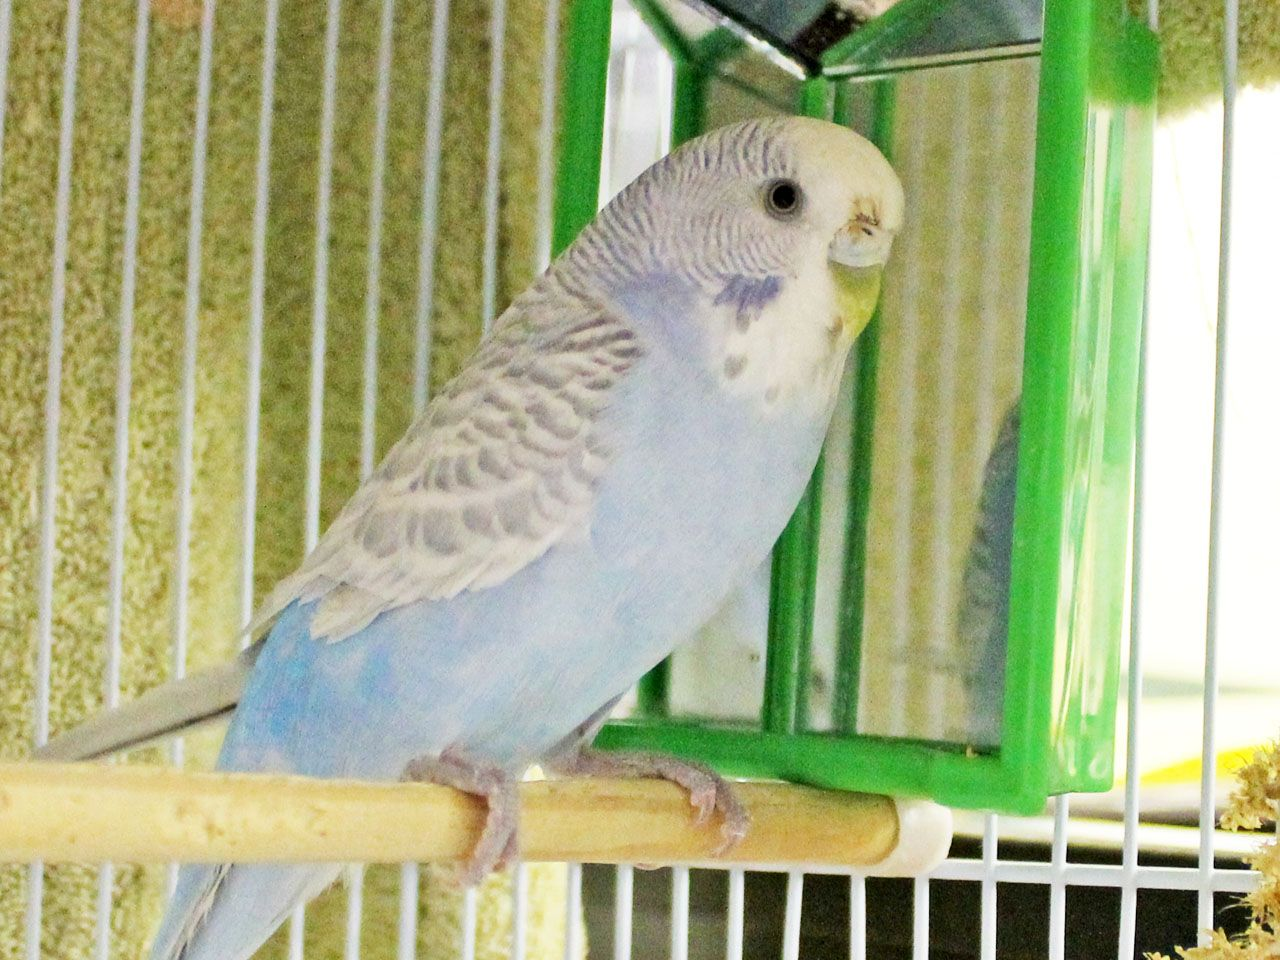 Wallace (ID: A396679) is a beautiful light blue and white parakeet. This parakeet was rescued off the street. Wallace is a bit on the shy side here at the shelter but is lovely and makes wonderful parakeet sounds. Come adopt Wallace.